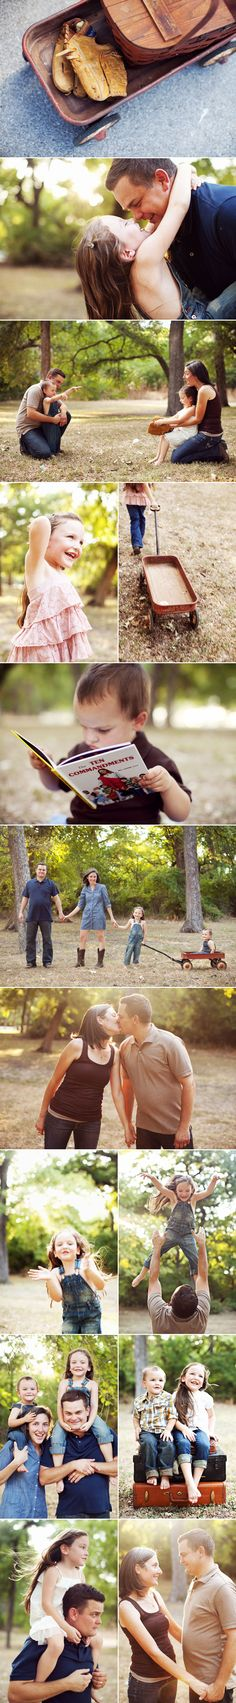 great family pic poses